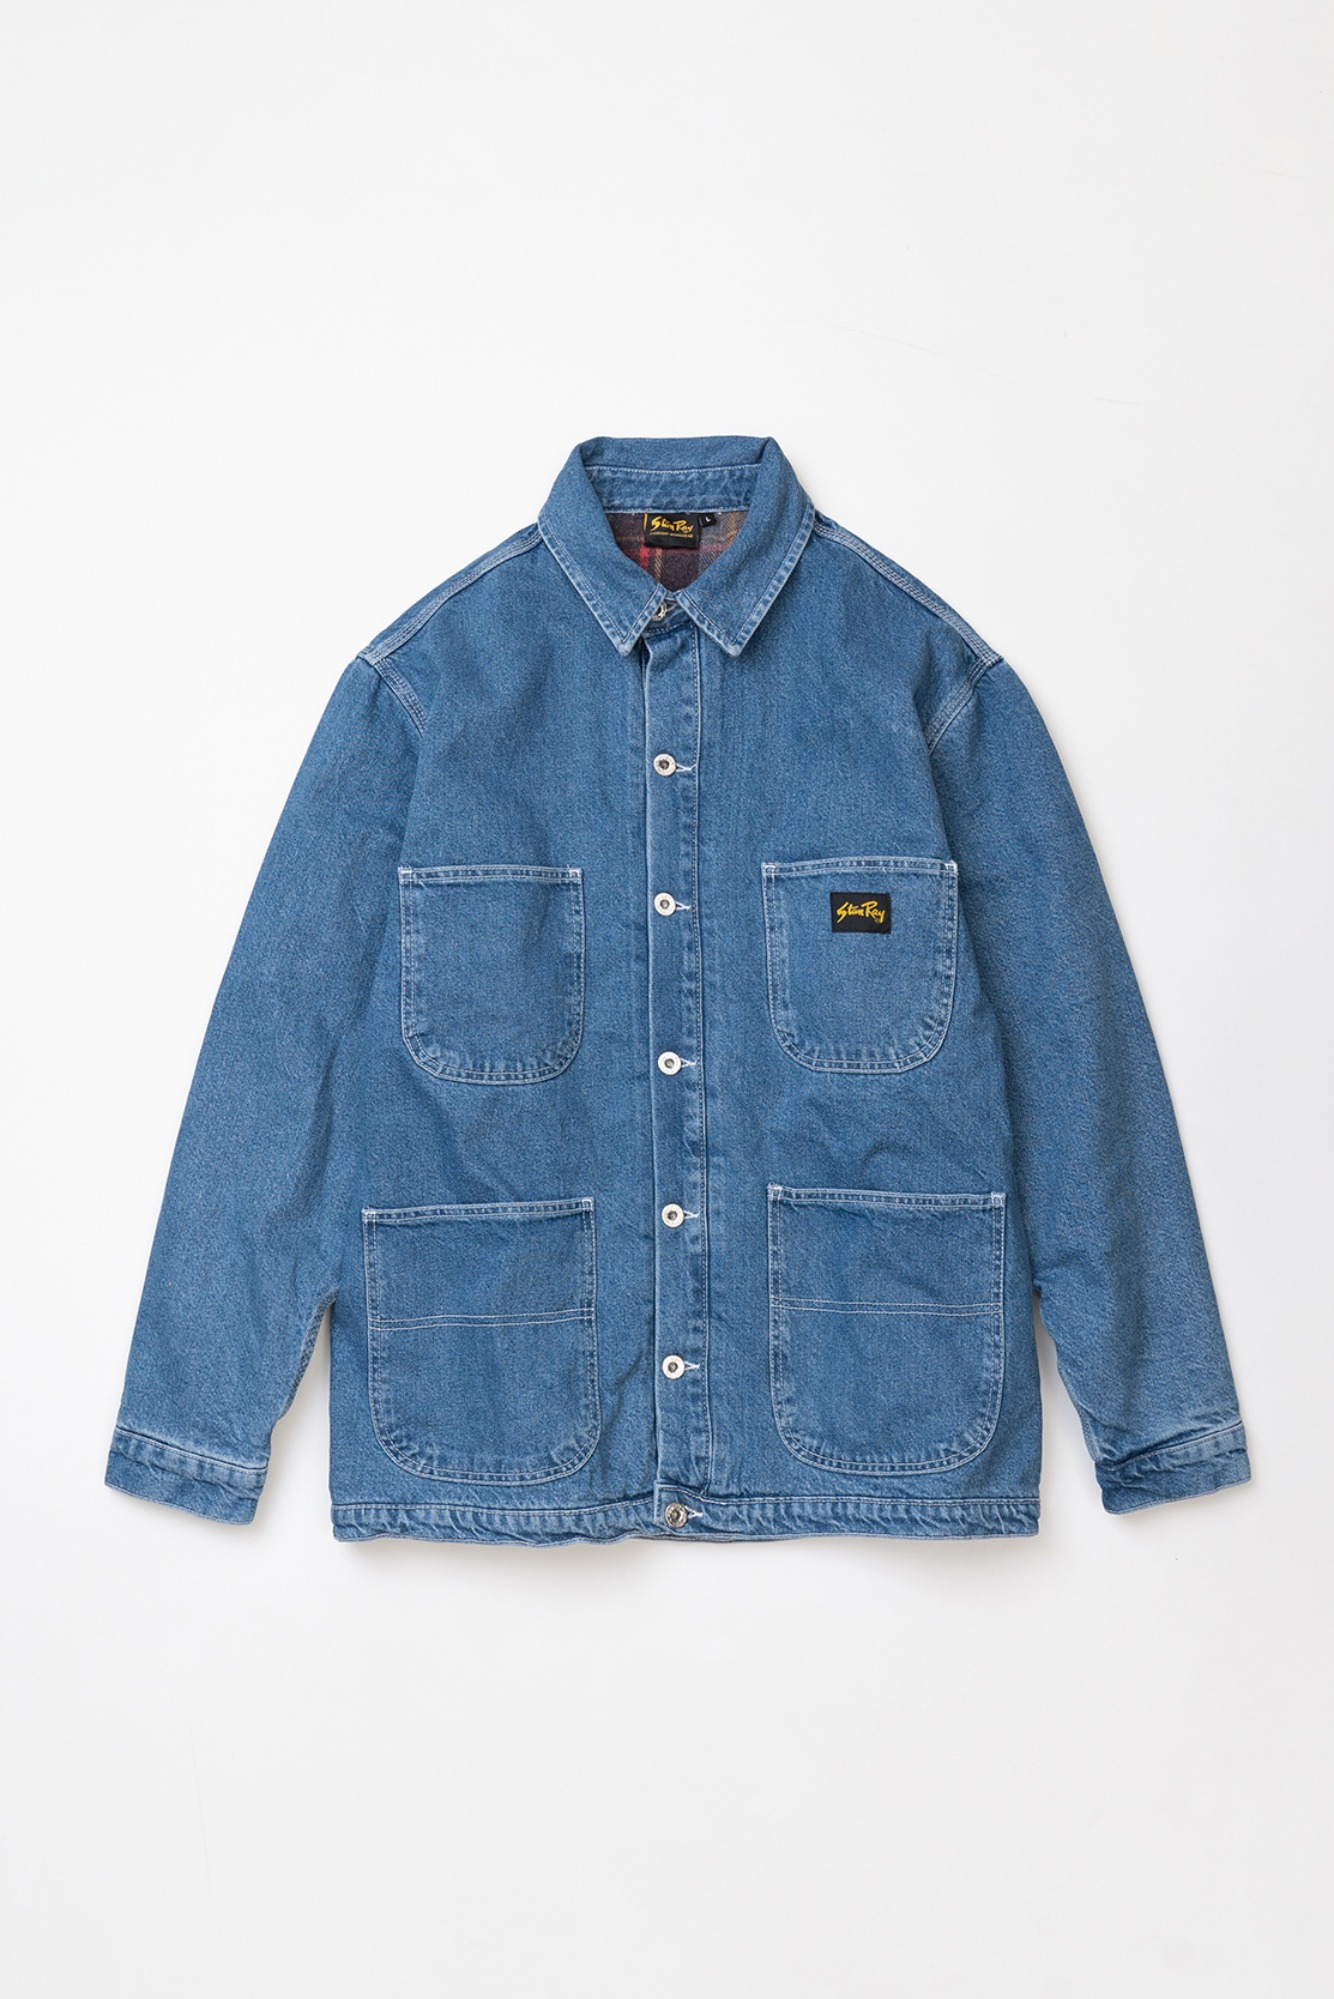 "STAN RAY Lined Barn Coat ""Vintage Stonewash"""